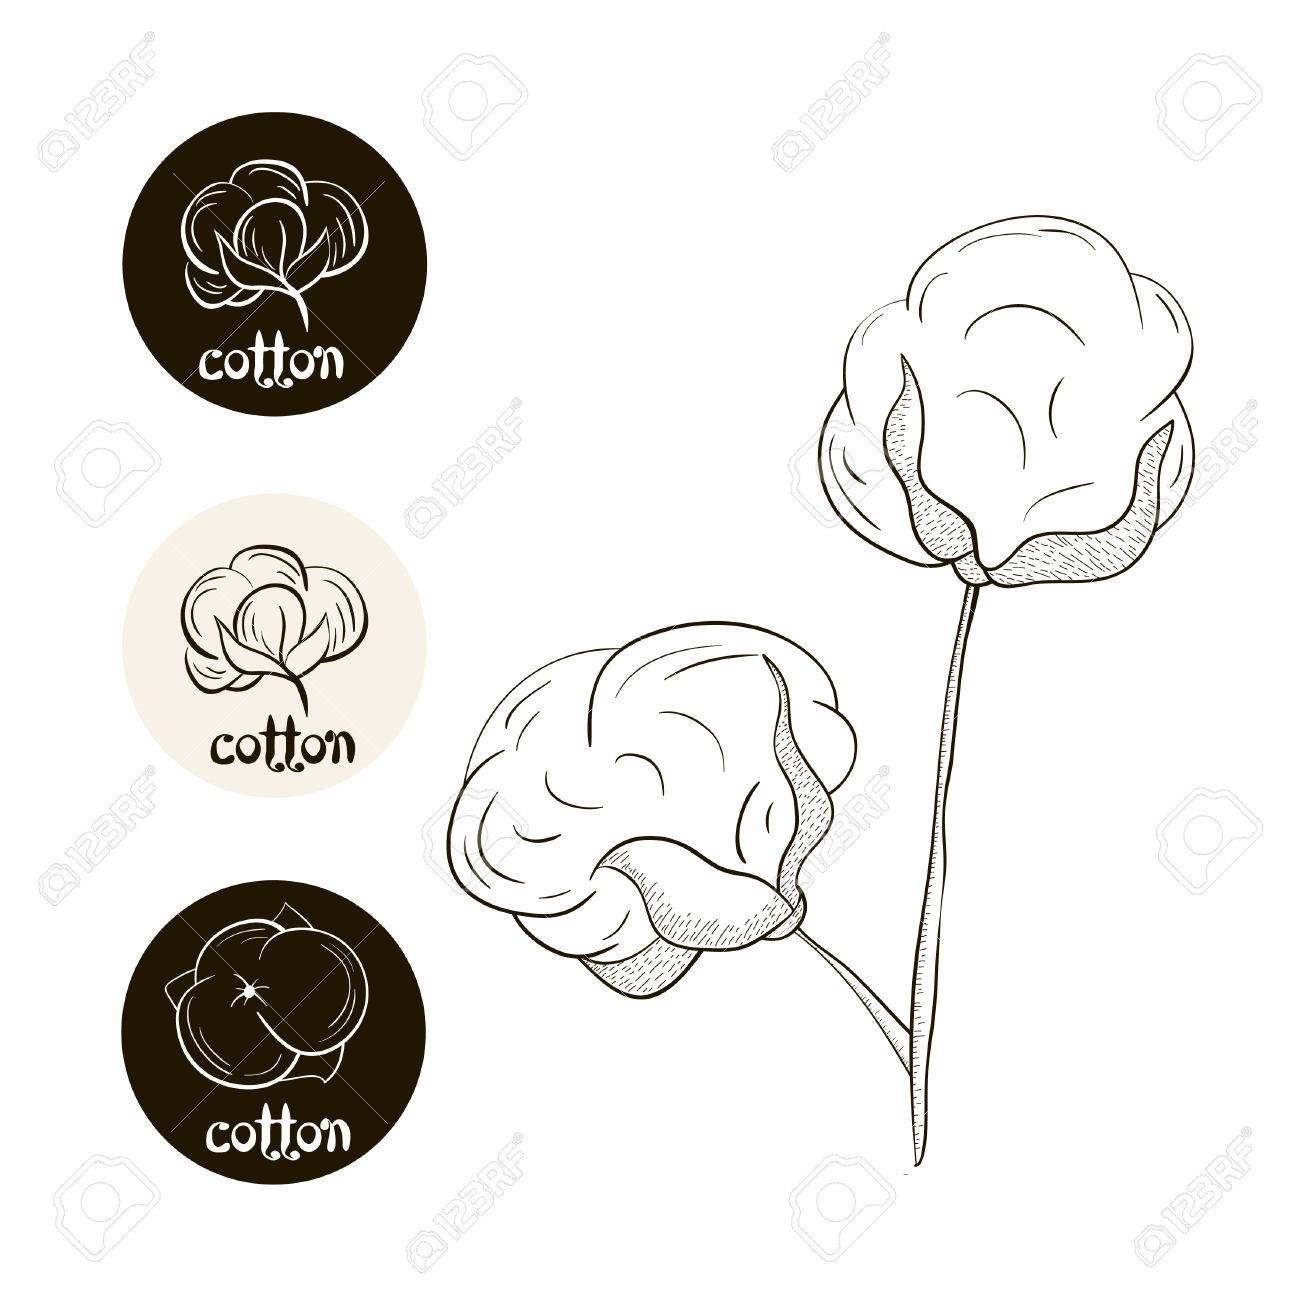 1300x1300 Vector Collection Of Cotton Badges. Hand Drawn Plant Cotton